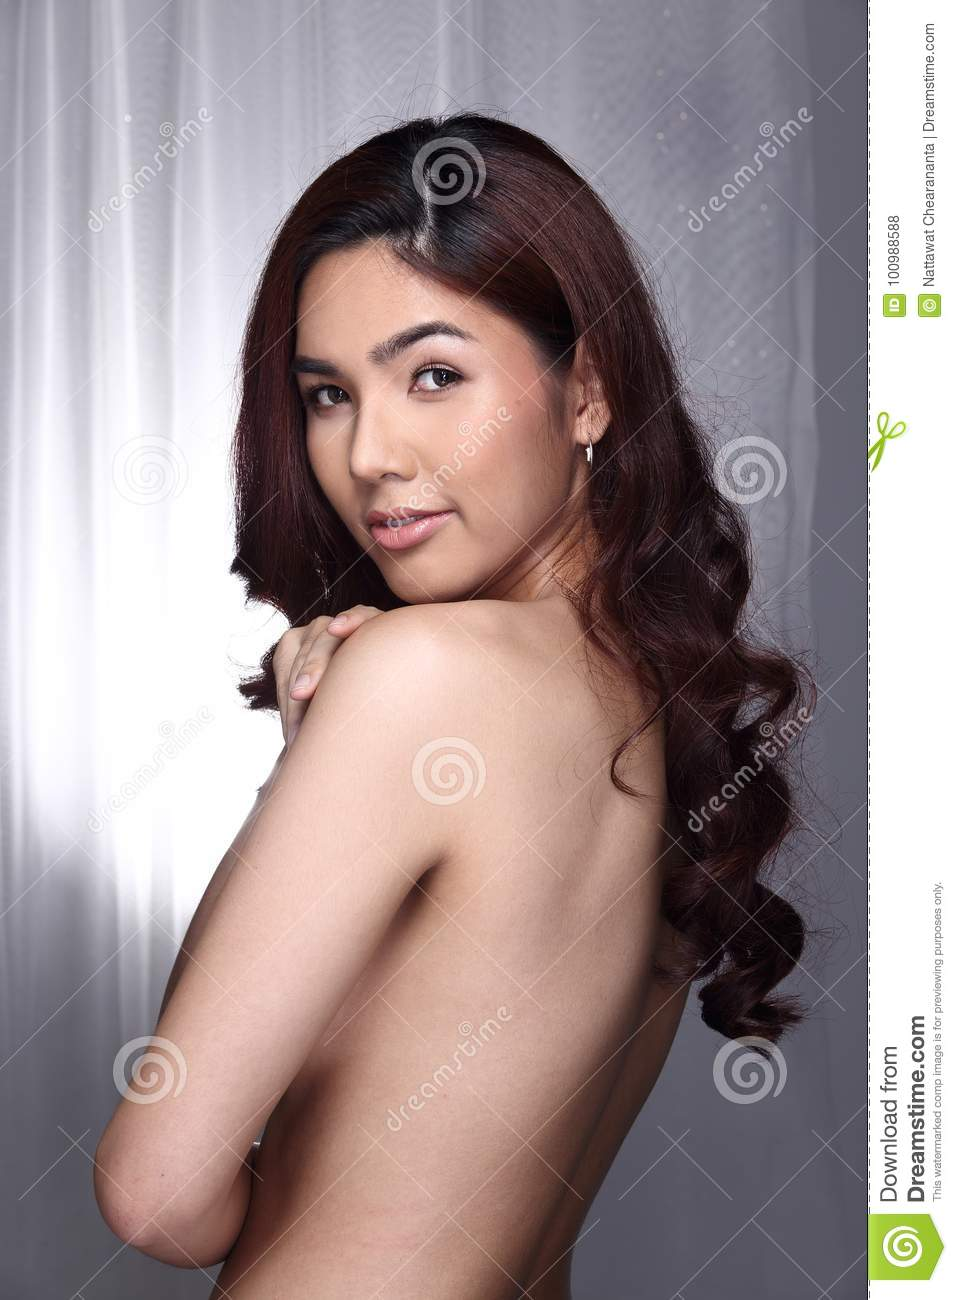 Transgender Model Woman Topless To Present Skin And Curl ...